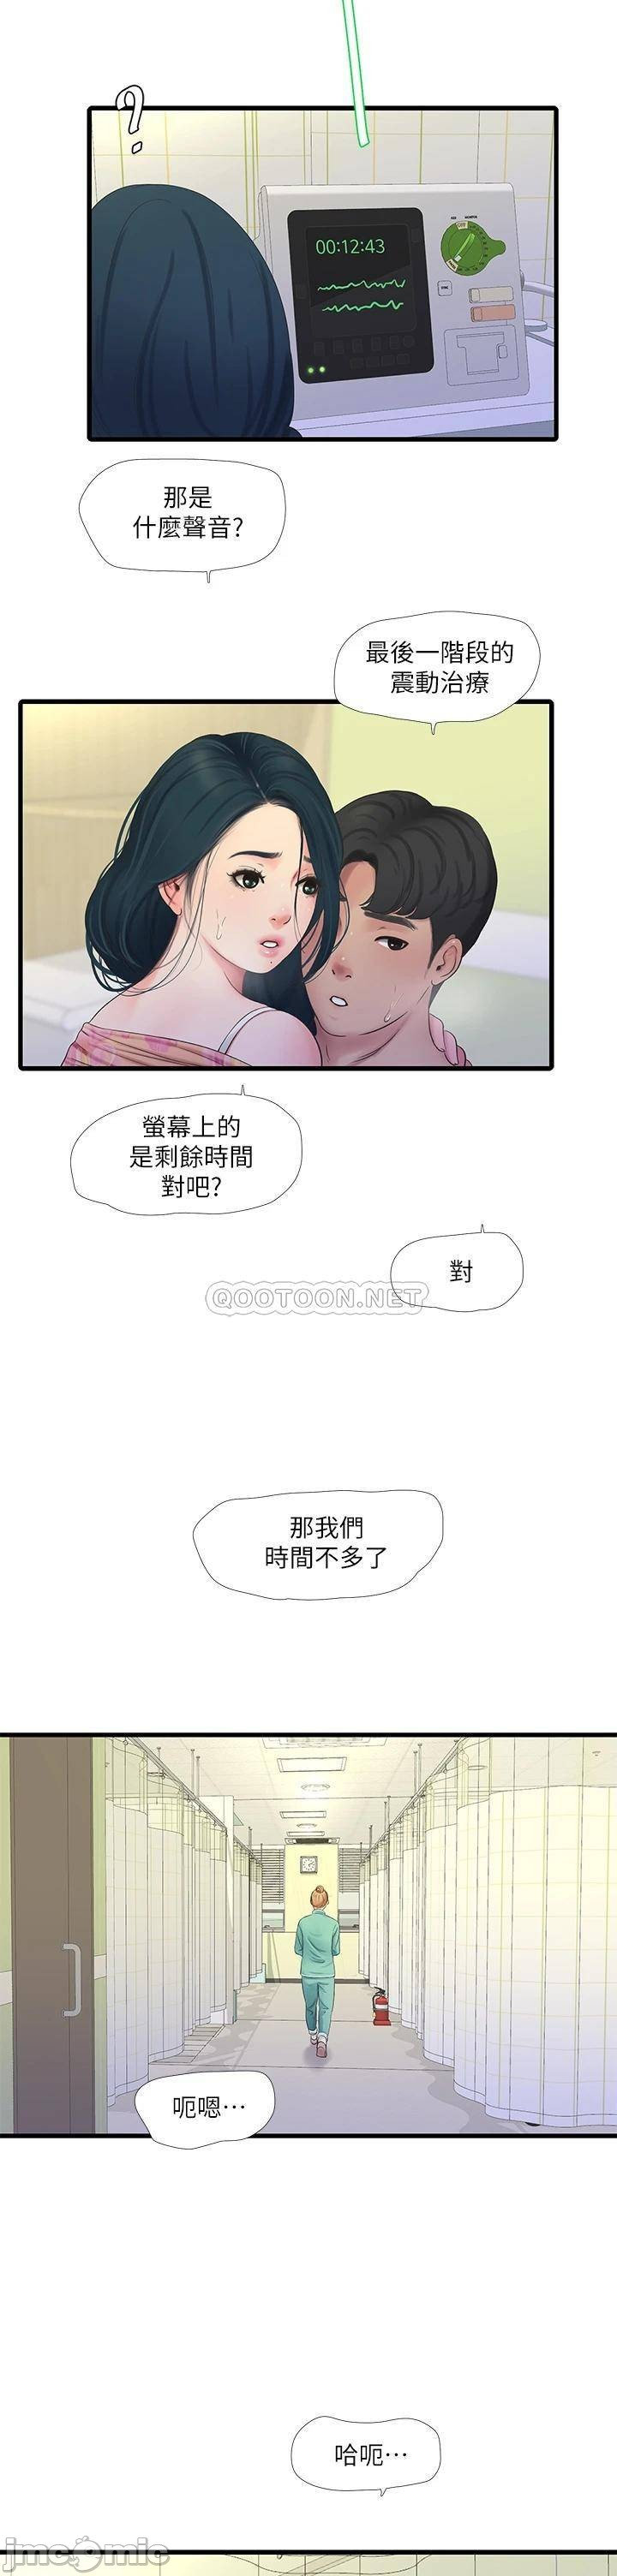 Ones in-laws virgins Raw Chapter 76 - Manhwa18.com